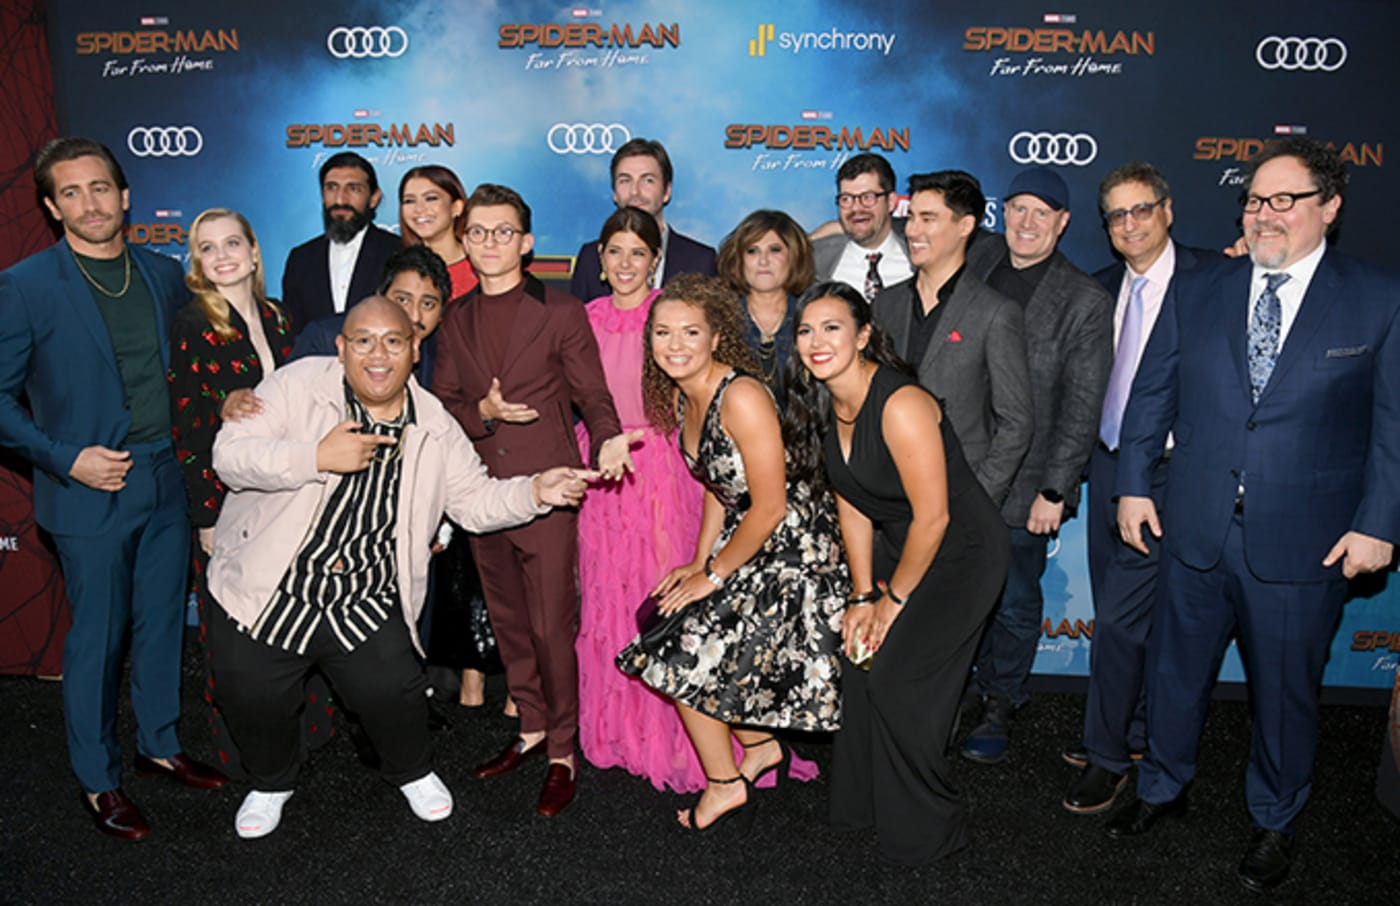 Spider Man cast and producers during happier days.